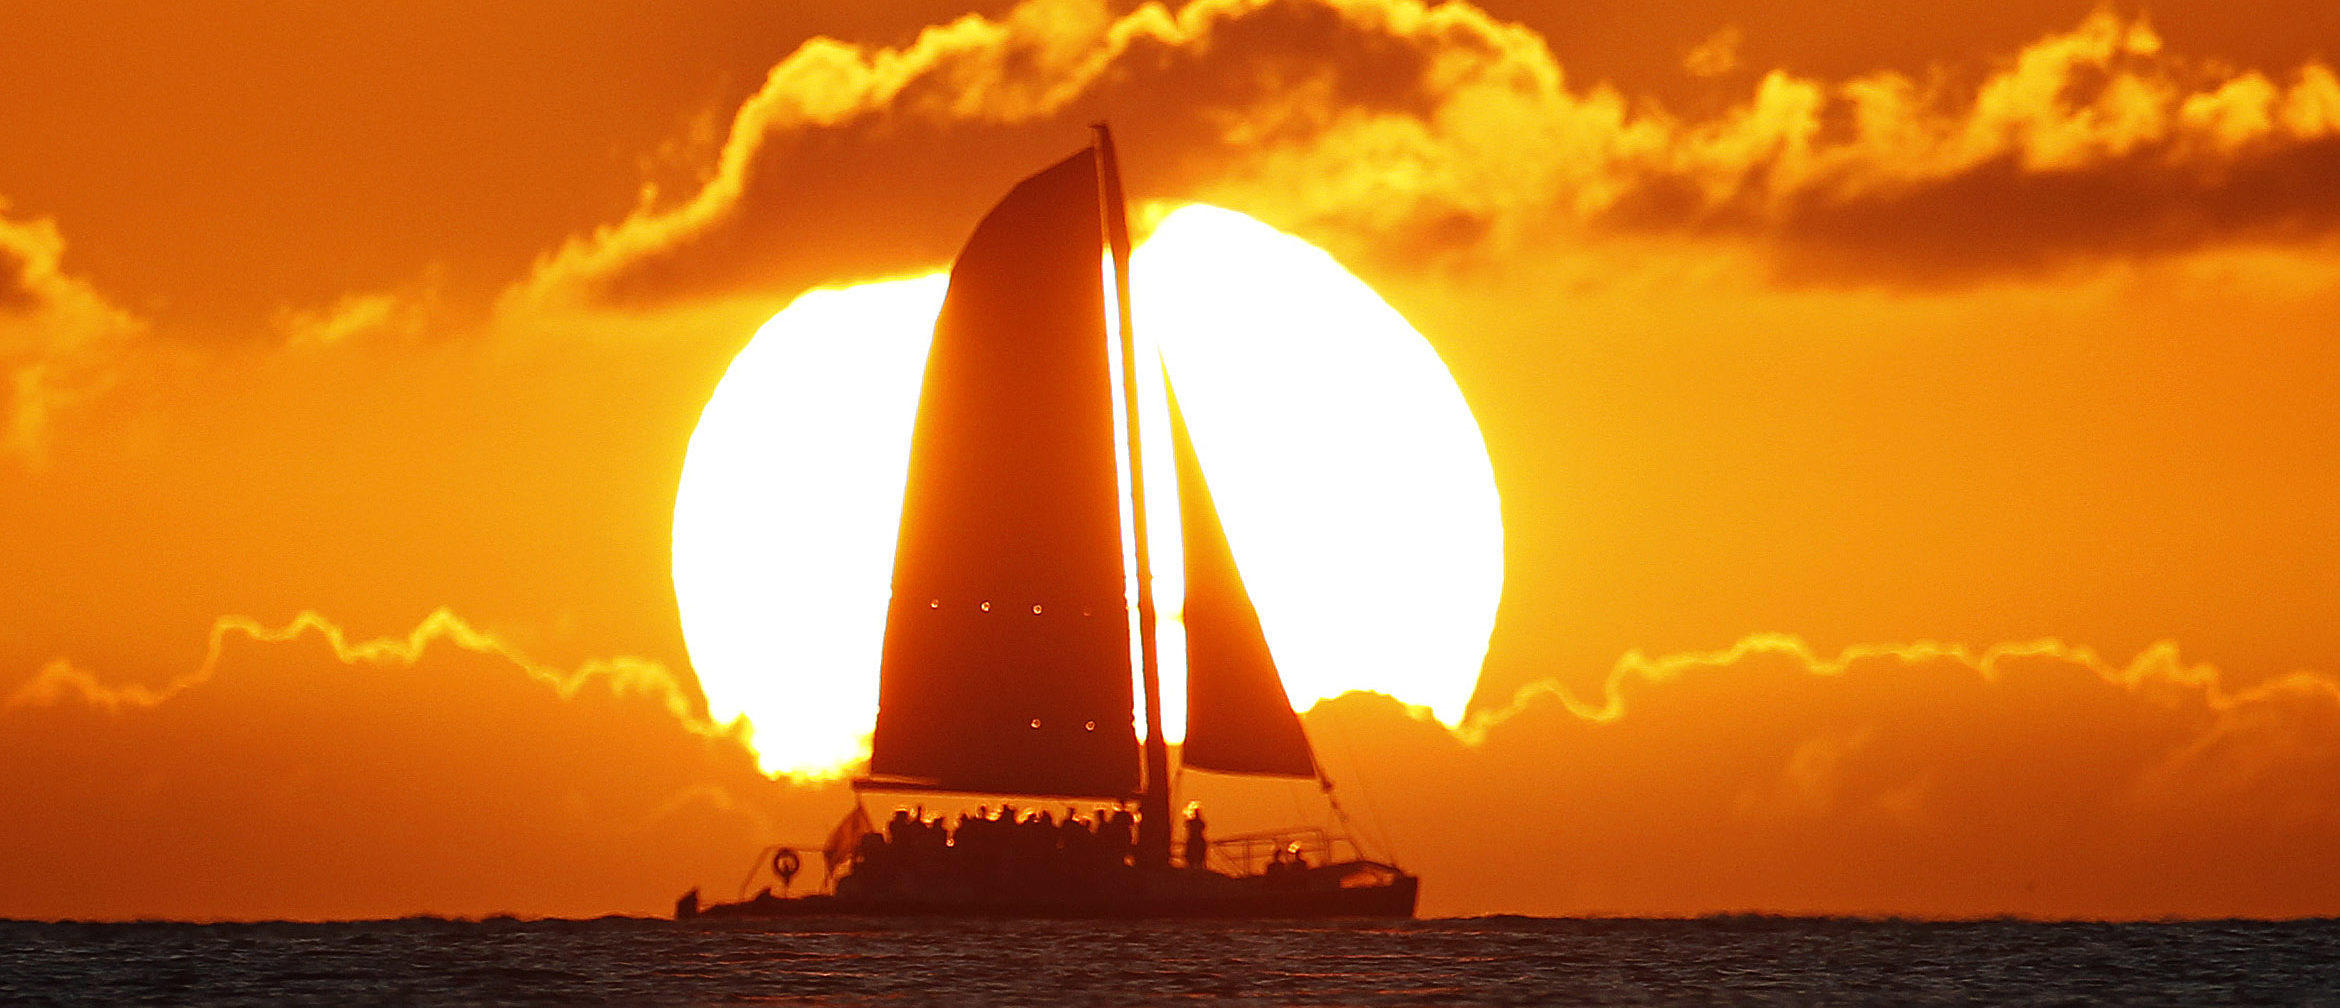 A sail boat passes in front of the sun as the last rays of sunlight of 2011 hit the waters off Waikiki Beach in Honolulu, Hawaii, December 31, 2011. Hawaii is one of the last places on earth that will usher in the New Year. REUTERS/Jason Reed (UNITED STATES - Tags: SOCIETY TPX IMAGES OF THE DAY) - GM1E8110Z8E01